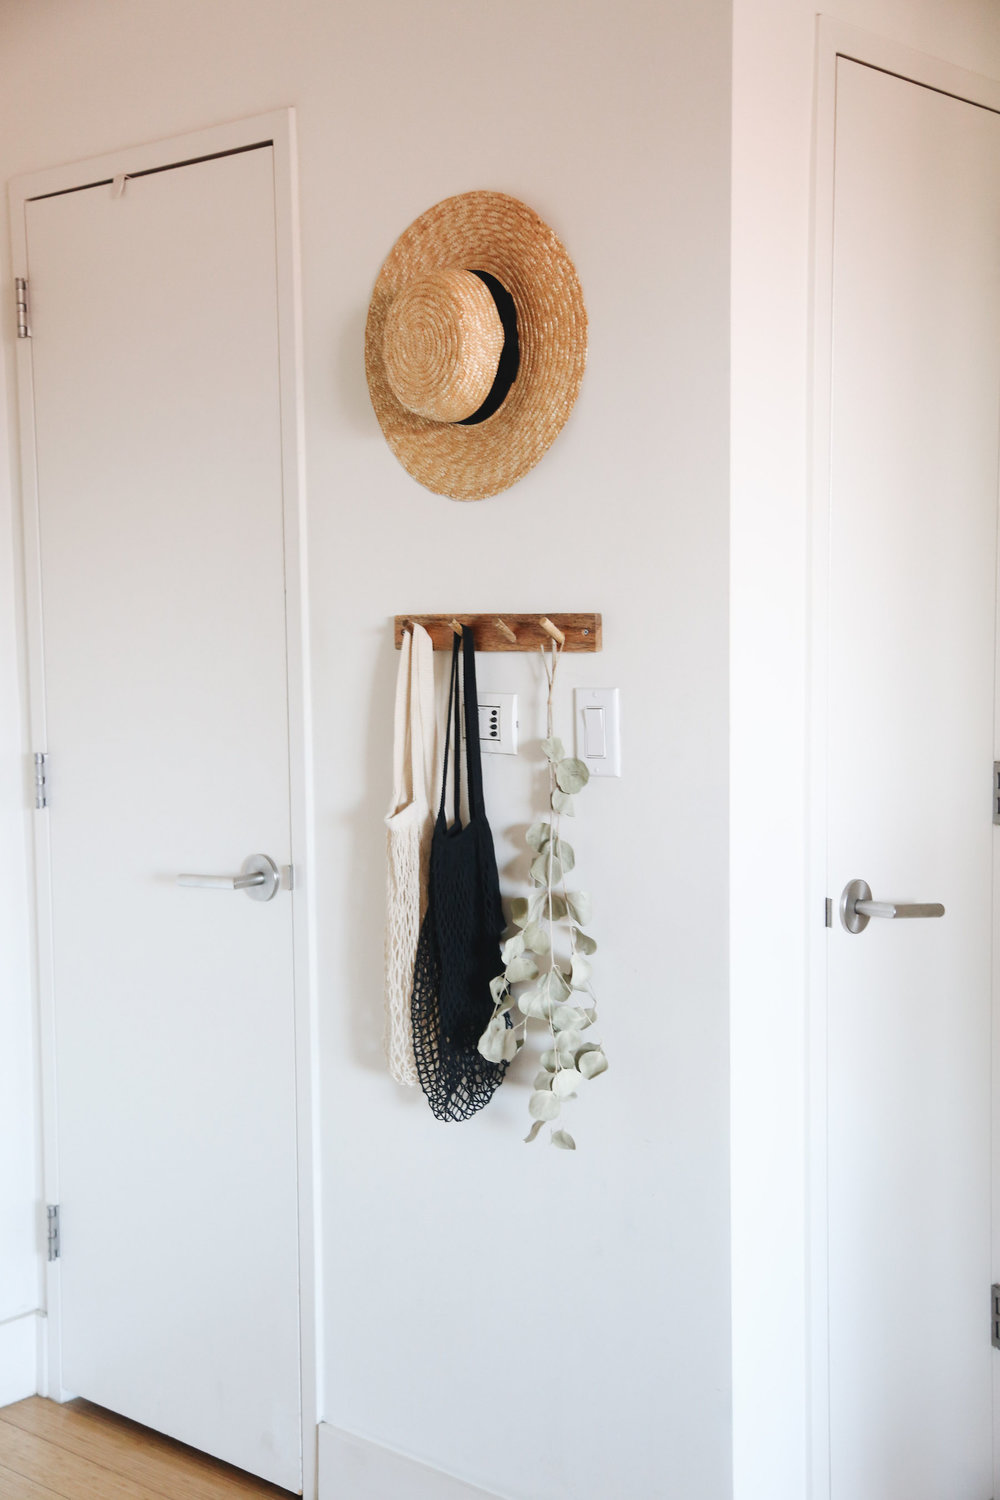 Since the entry can be seen from pretty much every other spot in our home, I kept it neutral and simple, hanging my favorite hat, a wooden clothes rack, woven bags to grab on my way out the door for groceries, and, because there wasn't room for plants, I also hung some dried euculyptus.